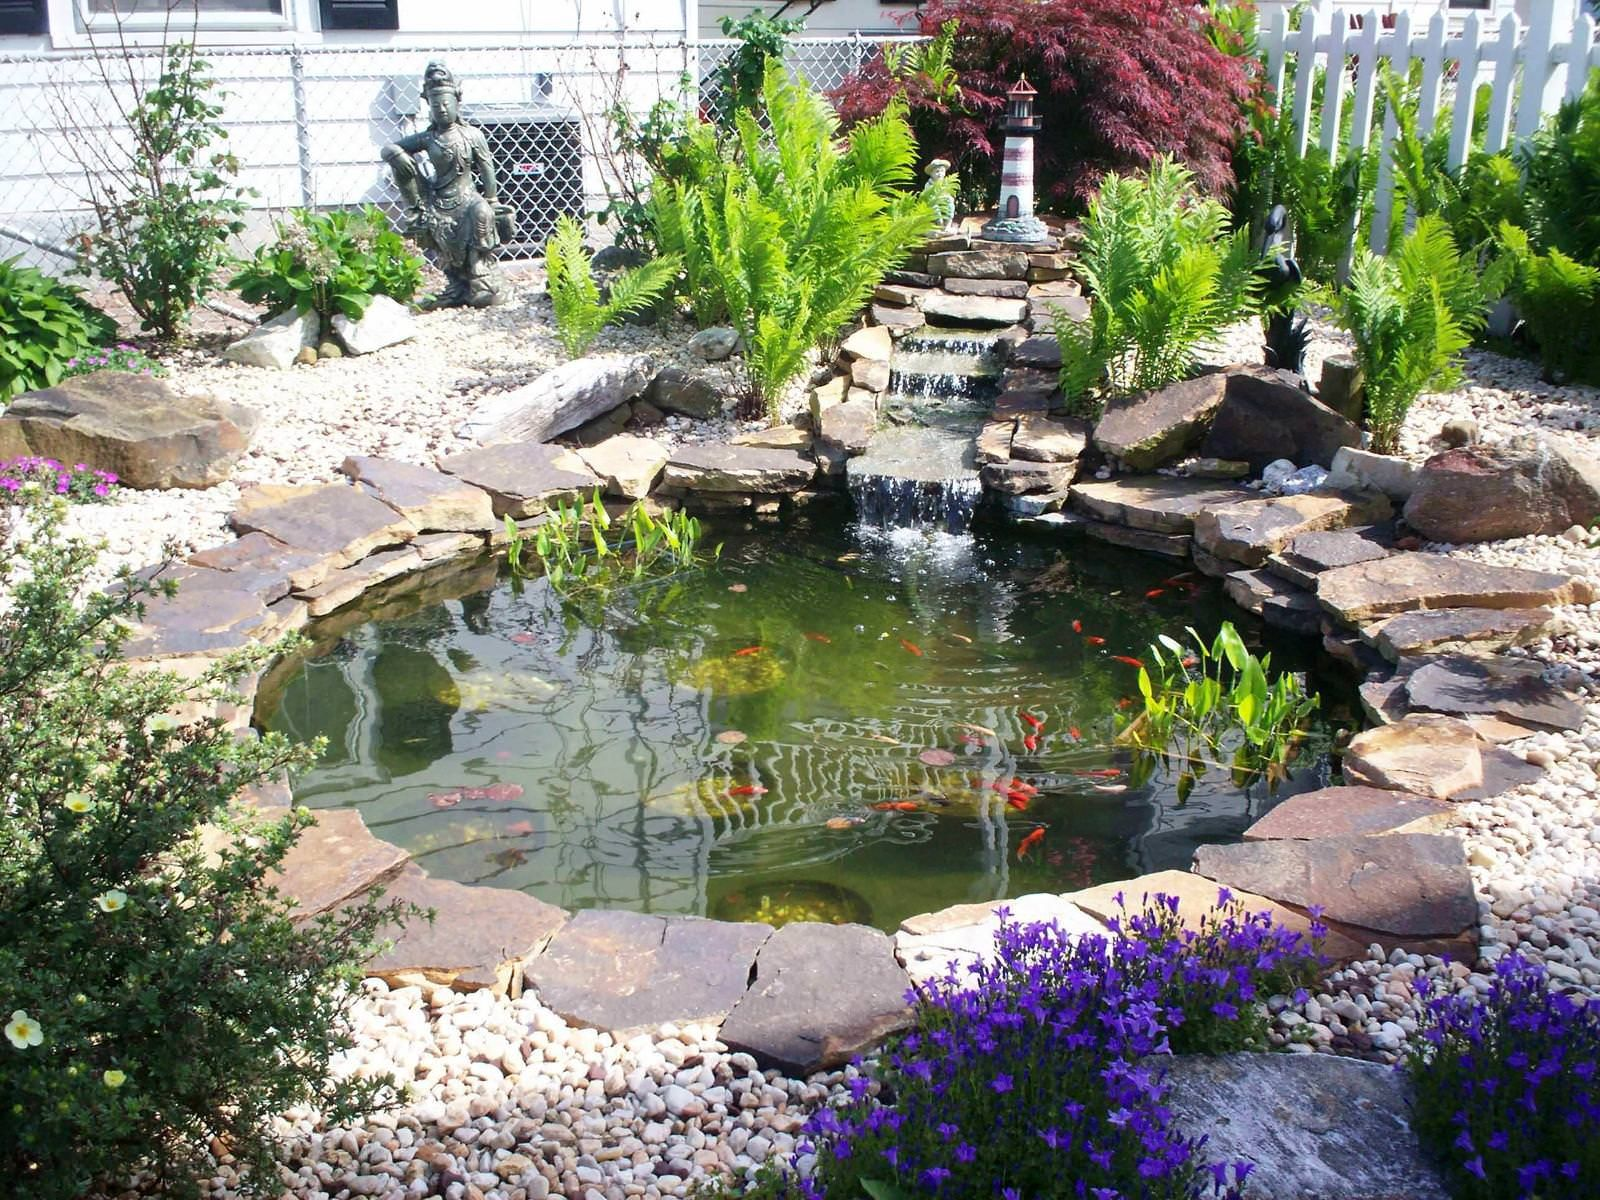 Small garden or backyard aquarium ideas practic ideas for Backyard koi pond designs